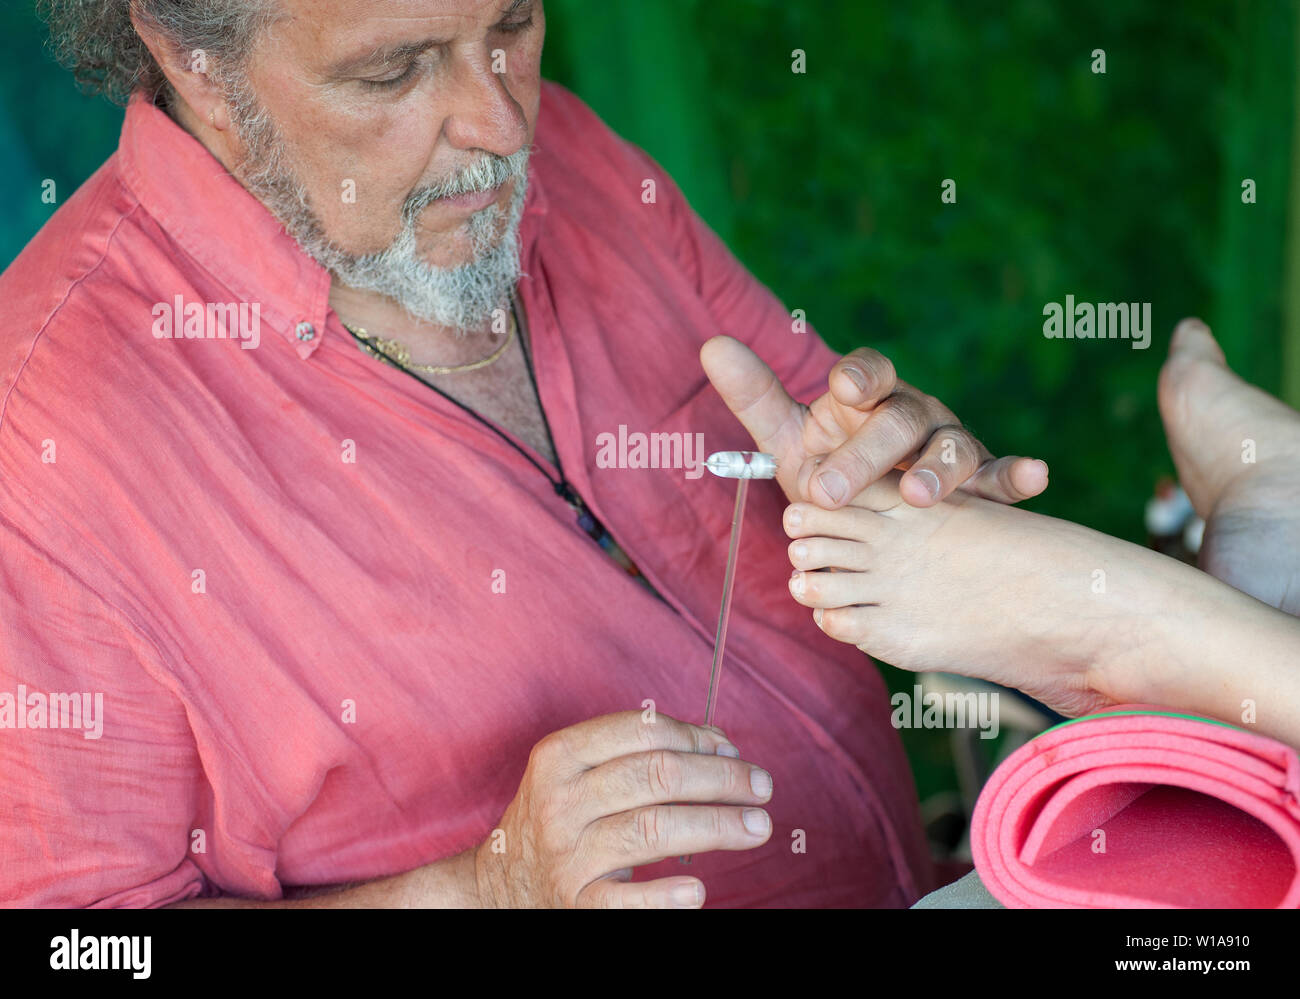 Professional masseur during a session of plantar reflexology, tapping with a tiny hammer - Stock Image